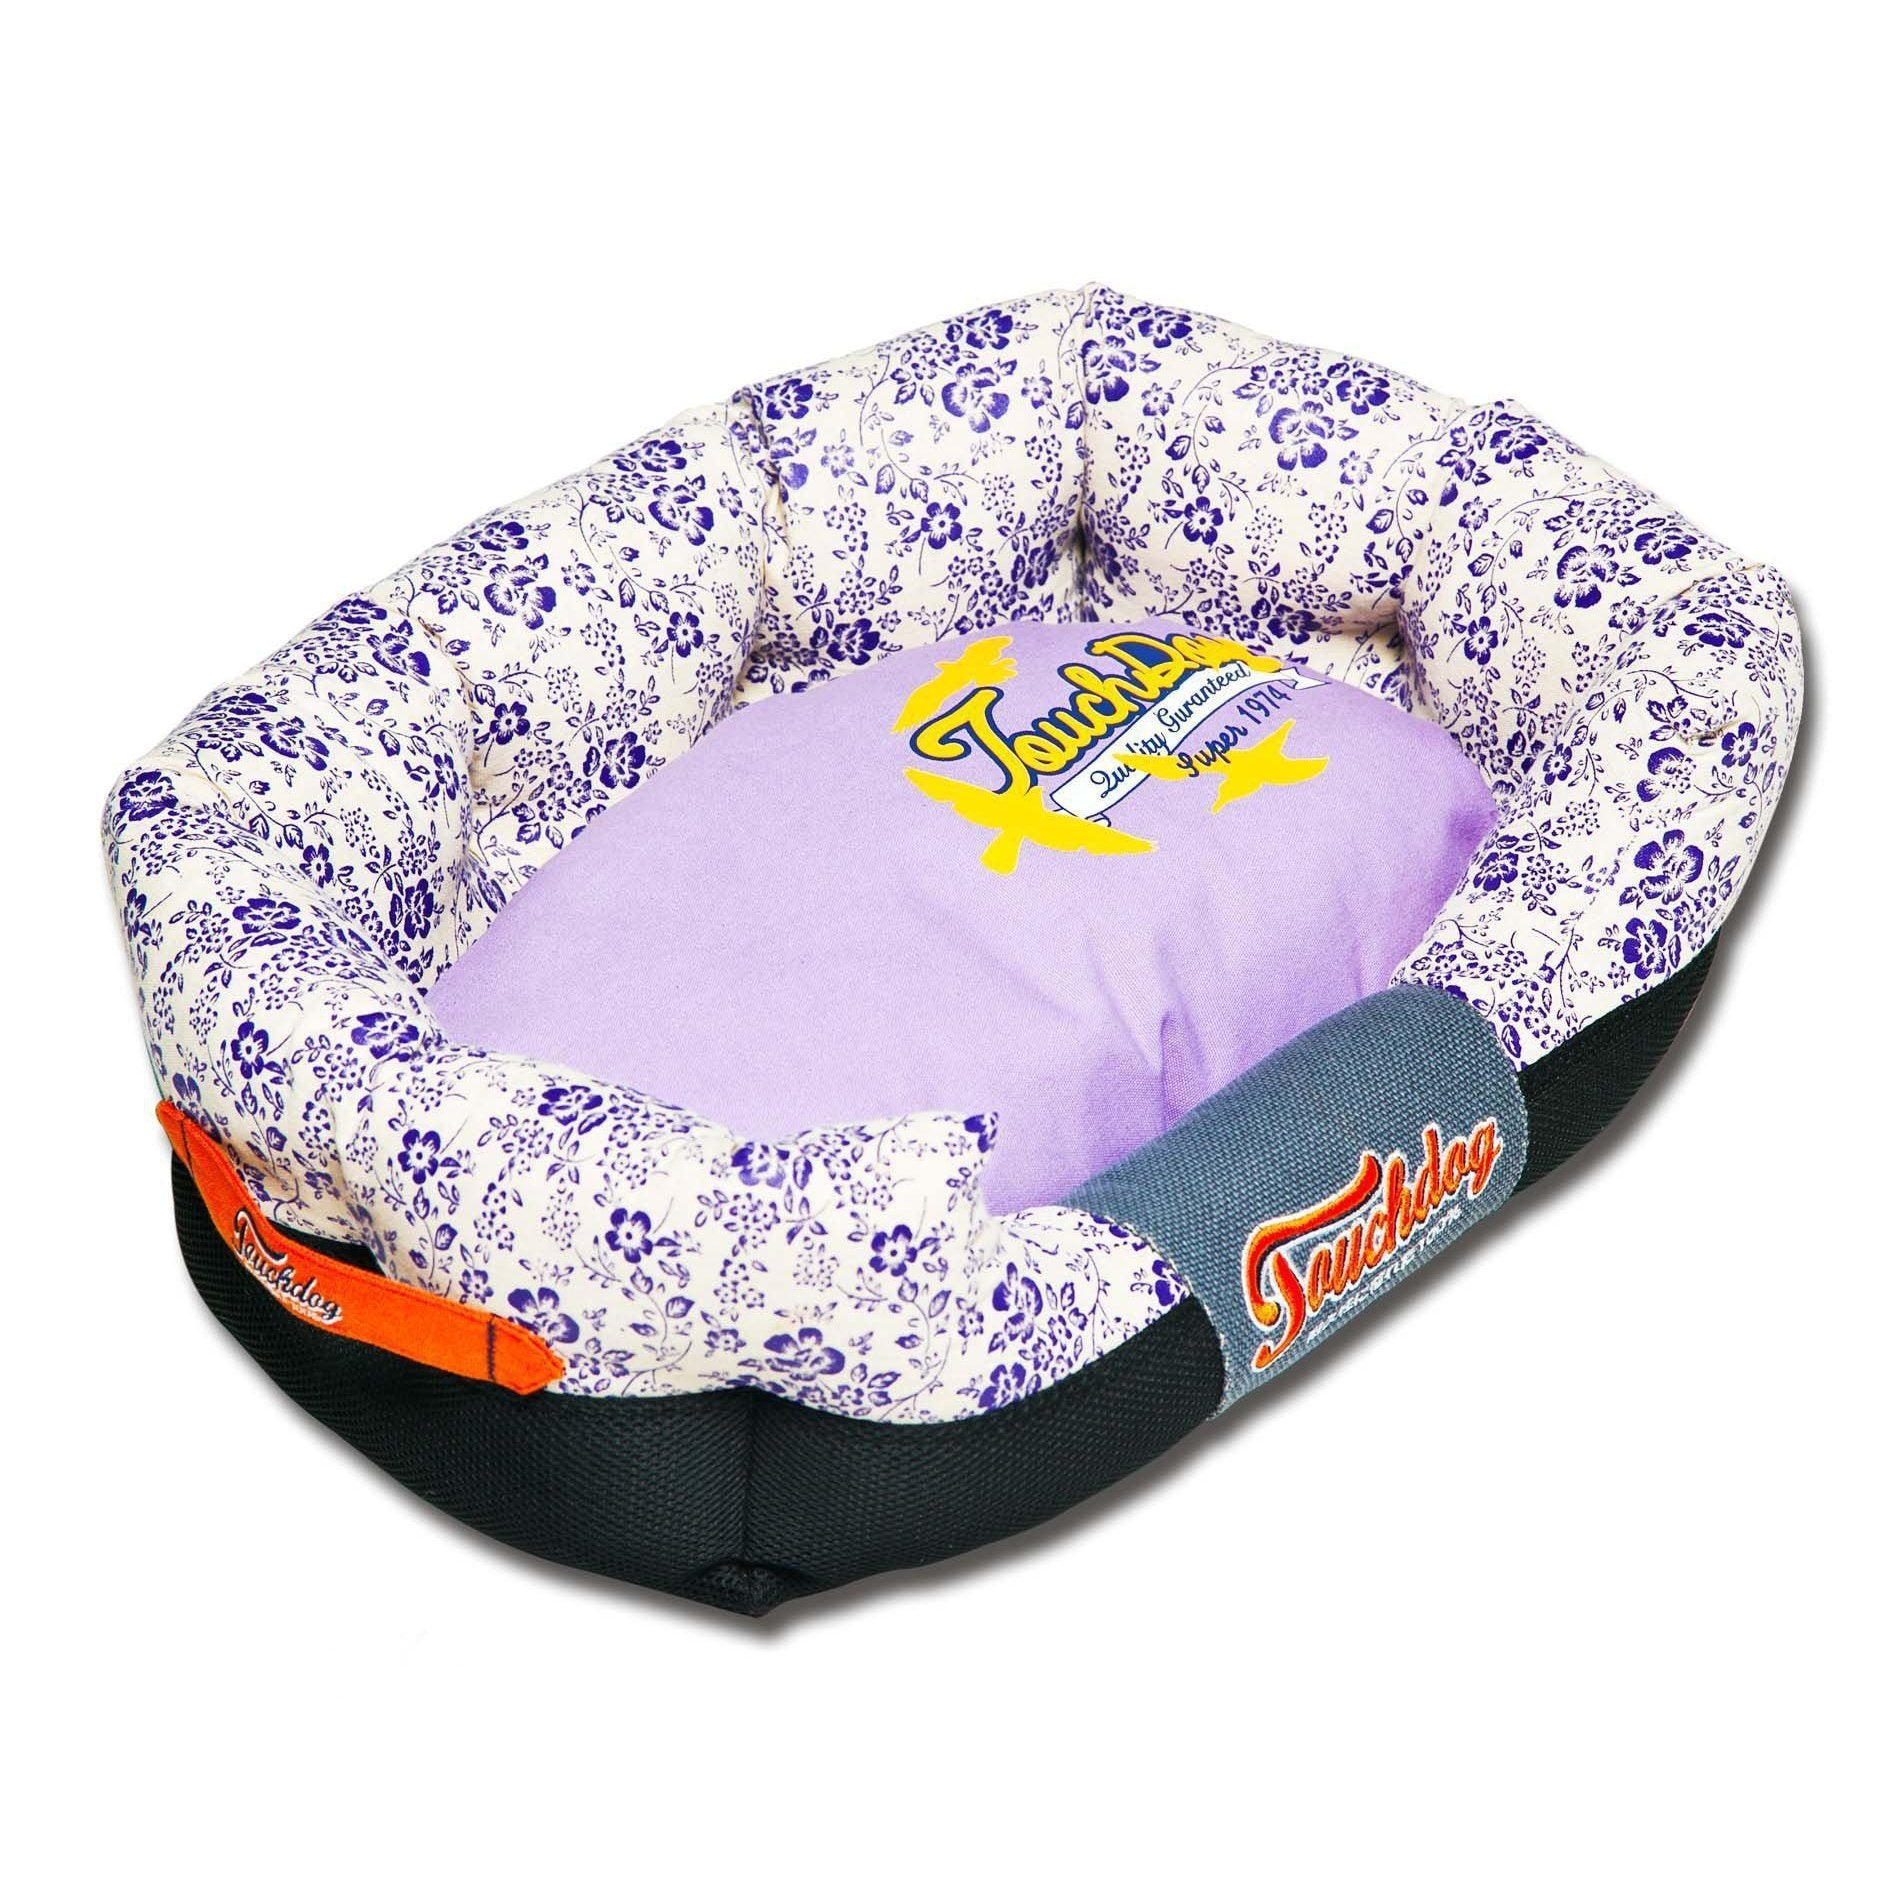 Touchdog Floral-Galore Ultra-Plush Rectangular Rounded Designer Dog Bed-Touchdog-DirtyFurClothing